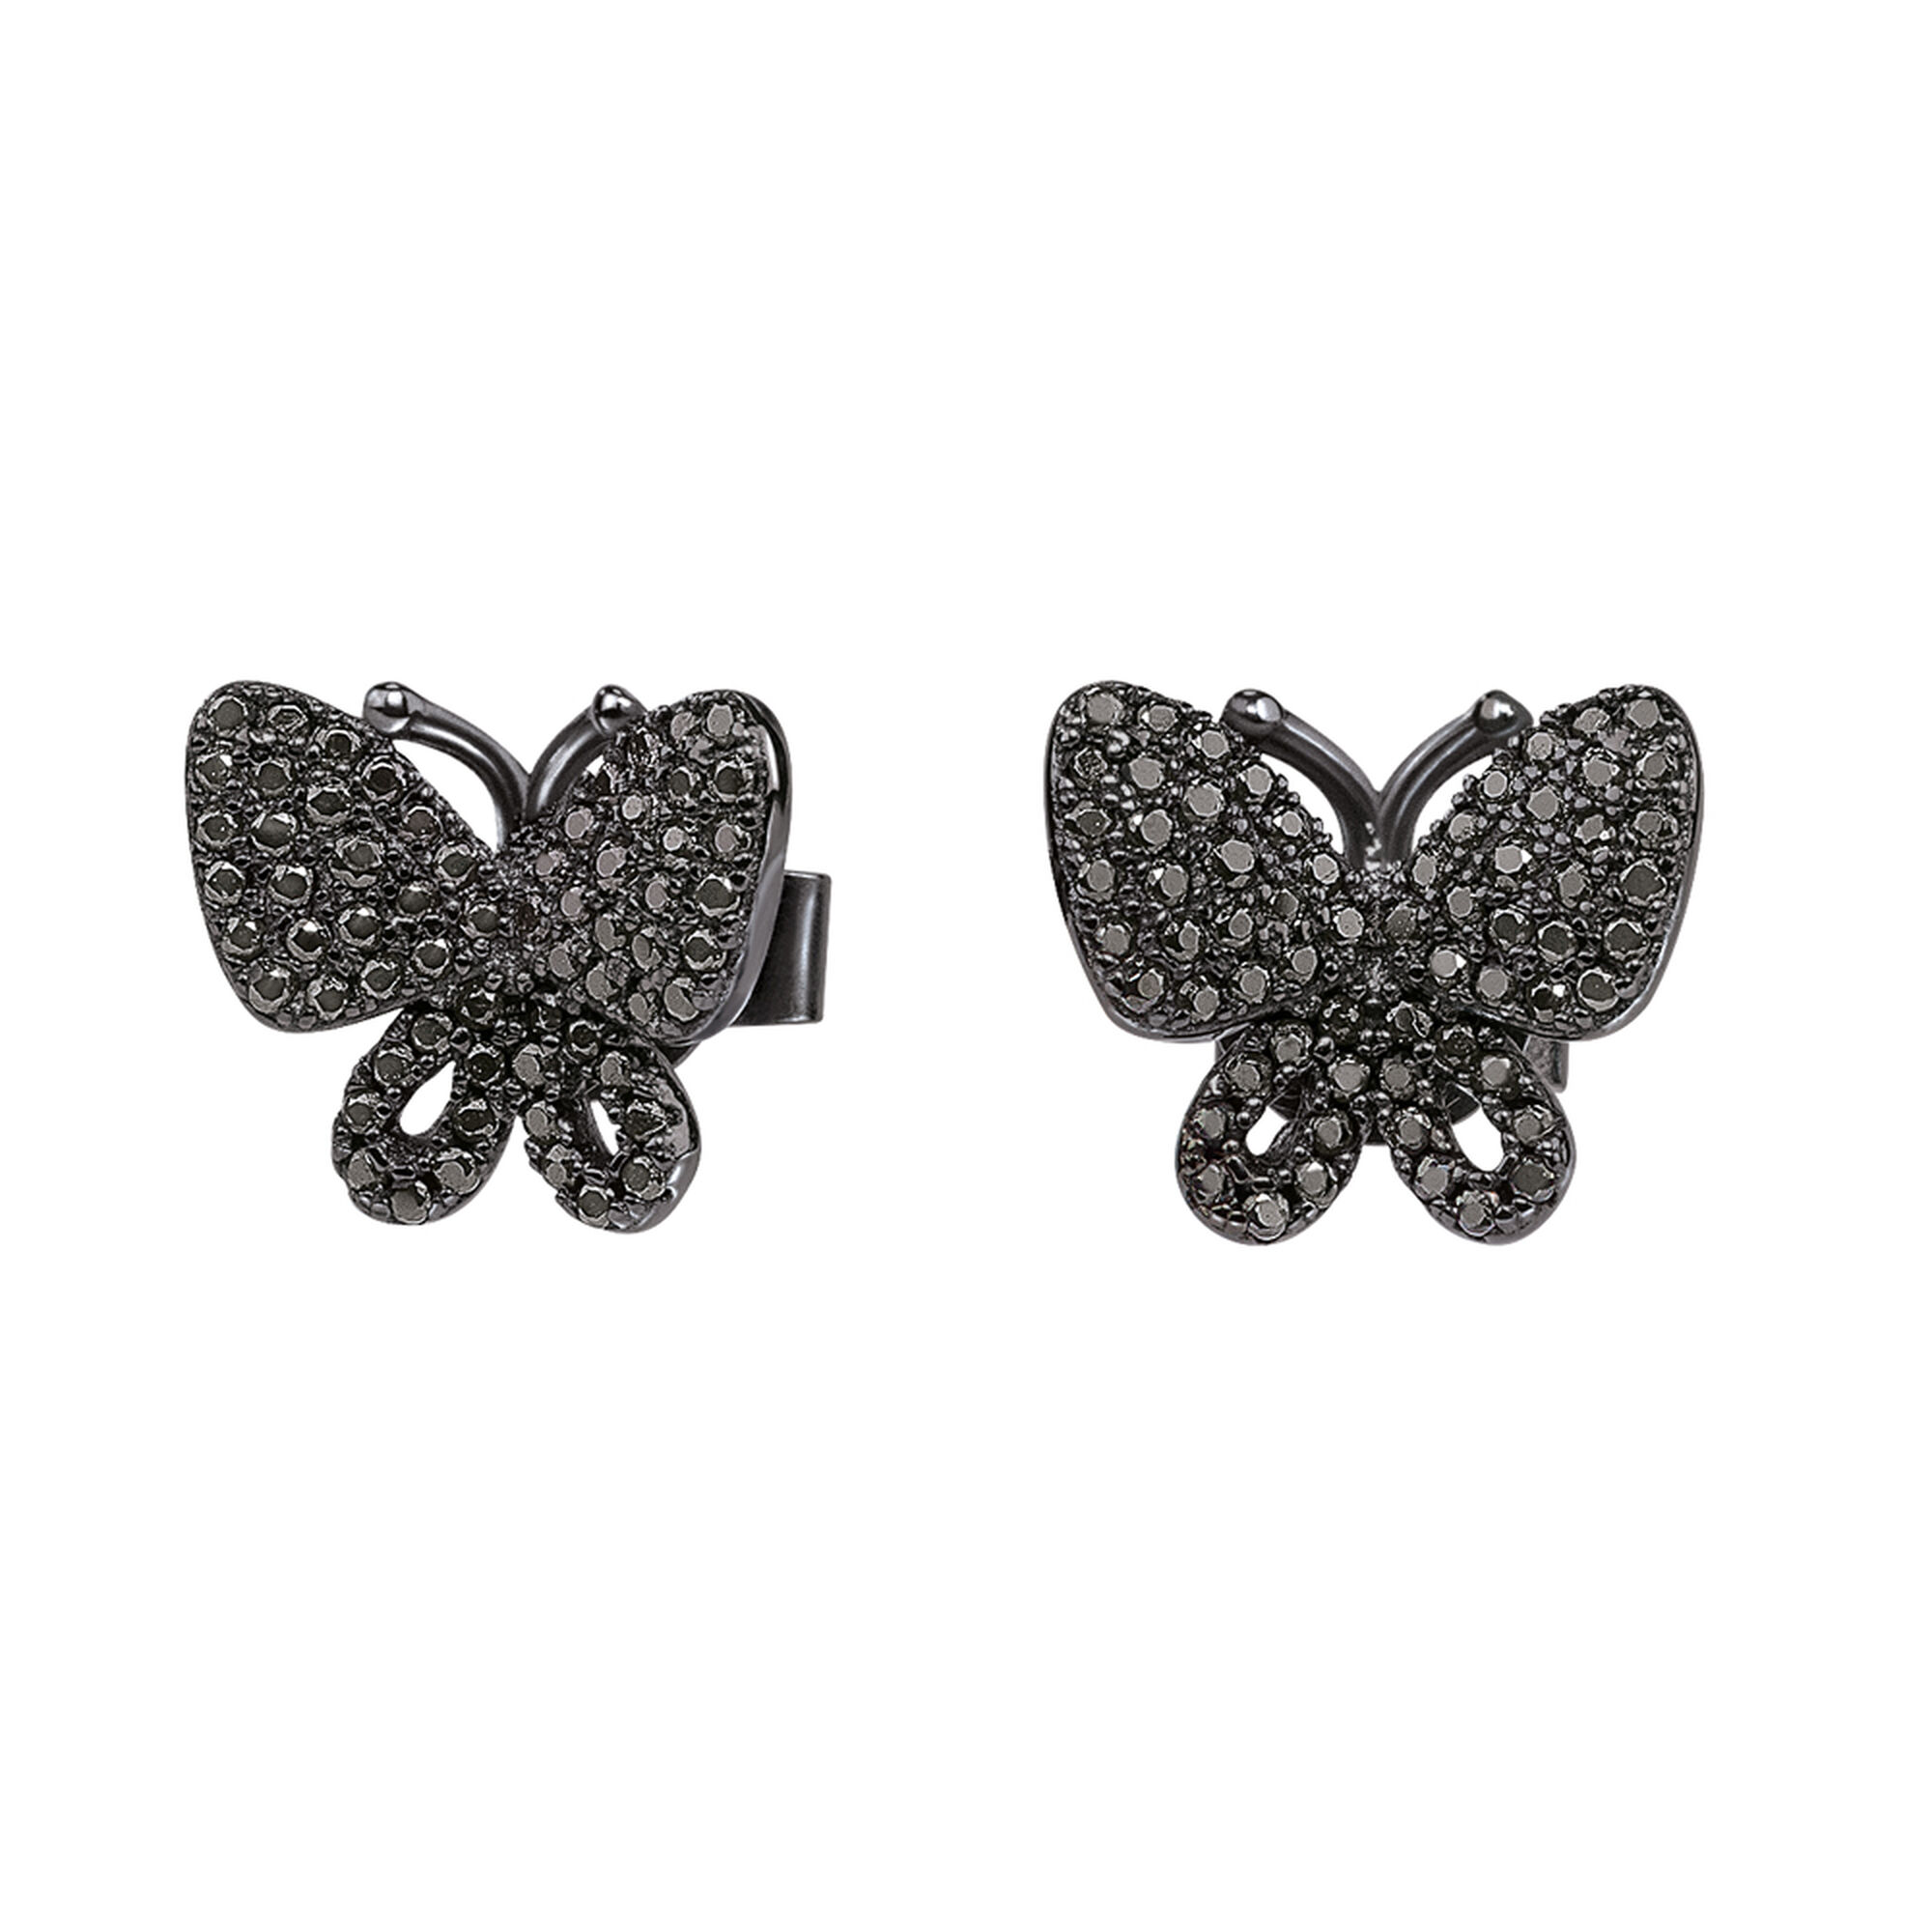 butterfly stud jewellery simply zoom earrings silver sterling zirconia earring cubic pave